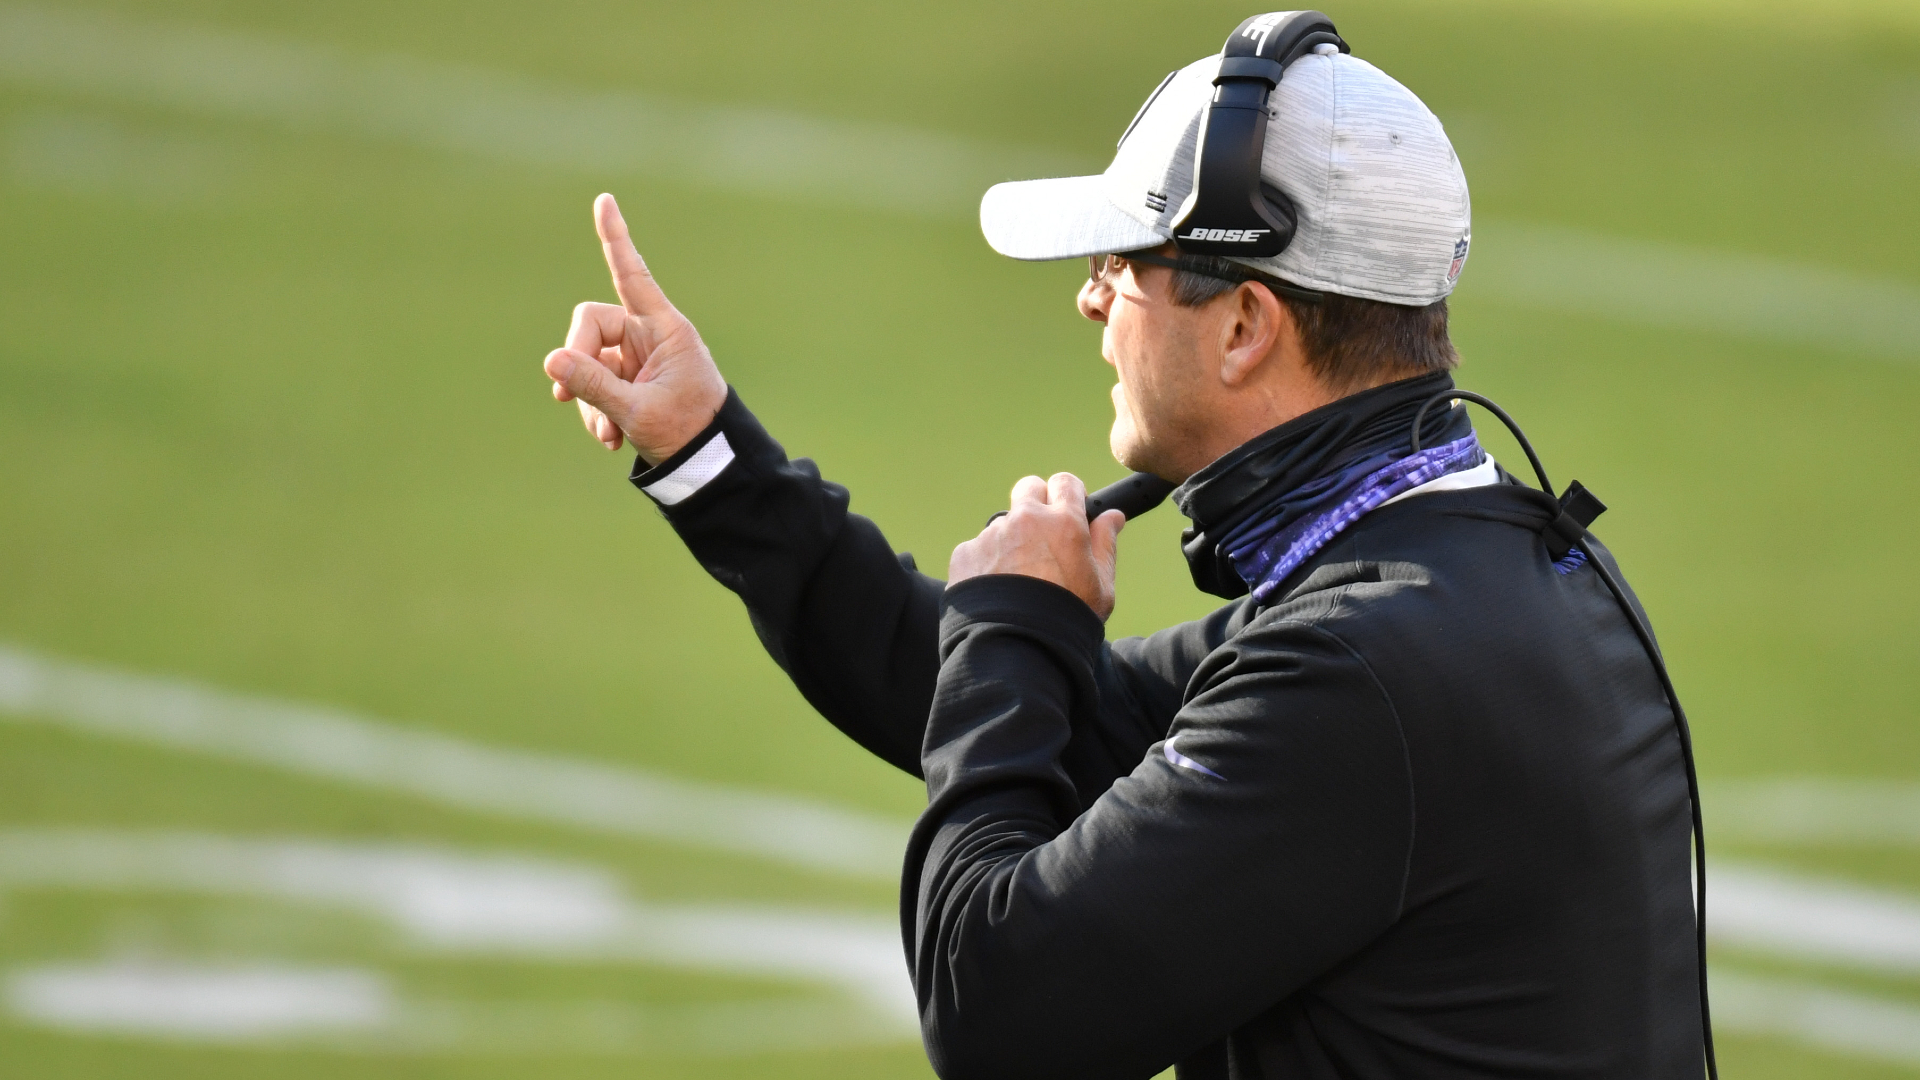 Ravens looking to continue hot streak after bye weeks under John Harbaugh